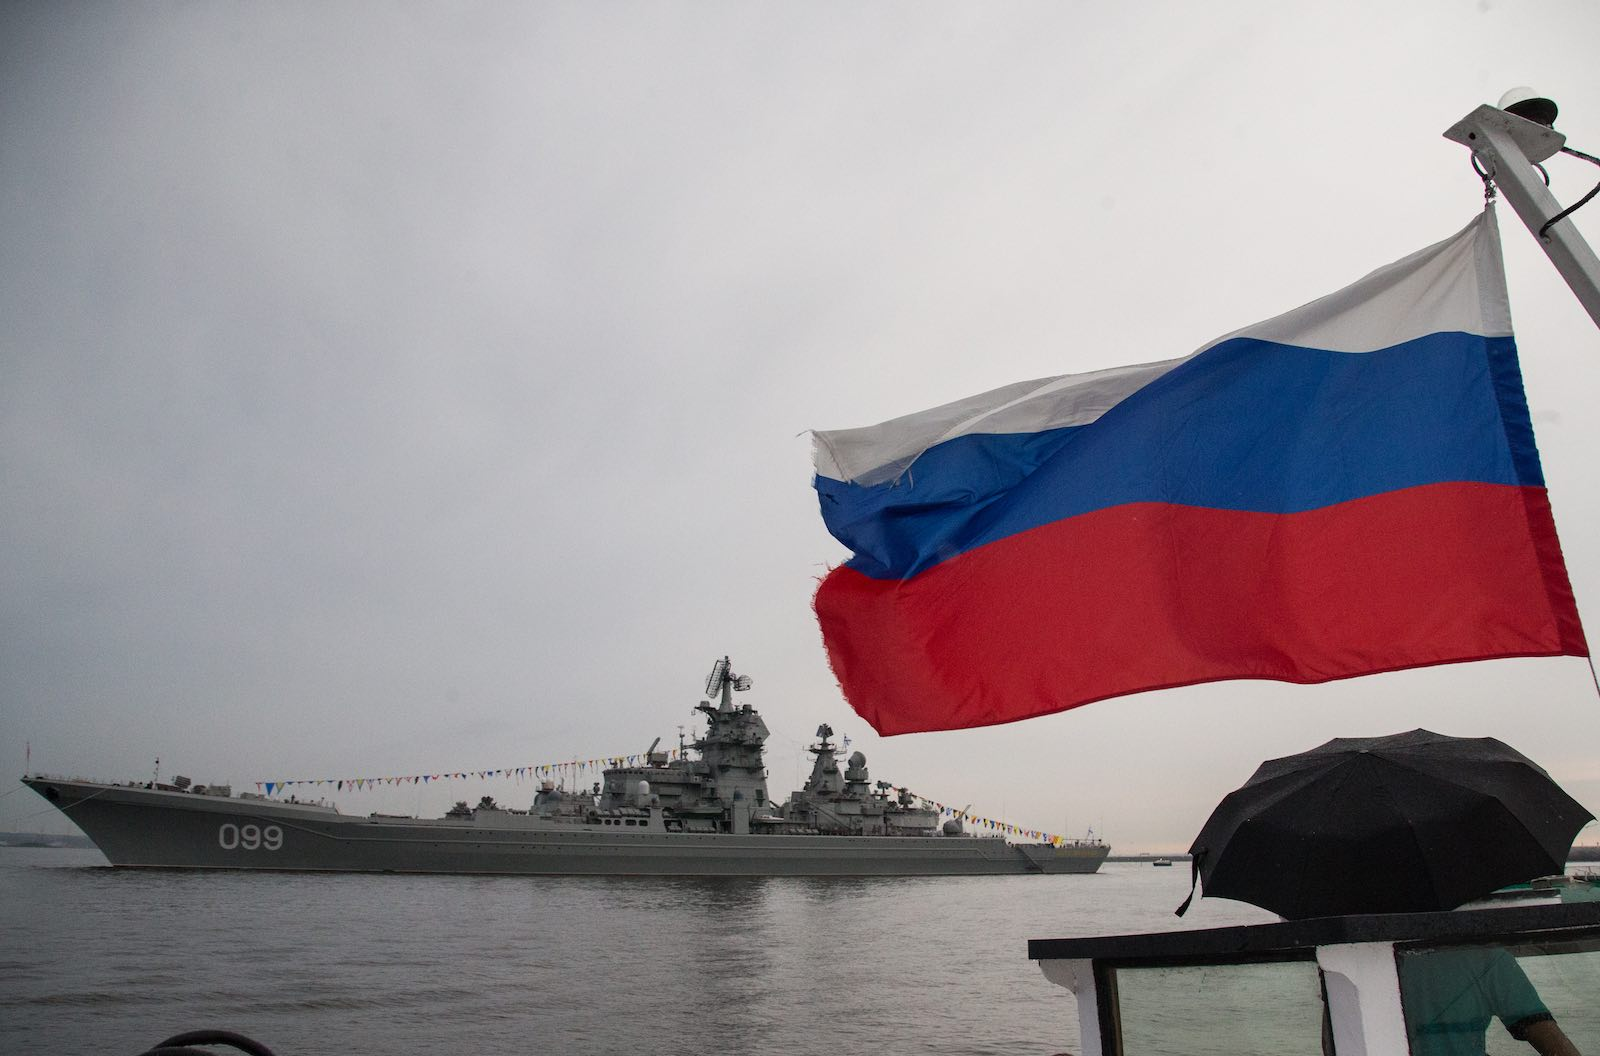 The Russian Navy's Pyotr Velikiy nuclear battle cruiser in St Petersburg (Igor Russak/NurPhoto via Getty Images)